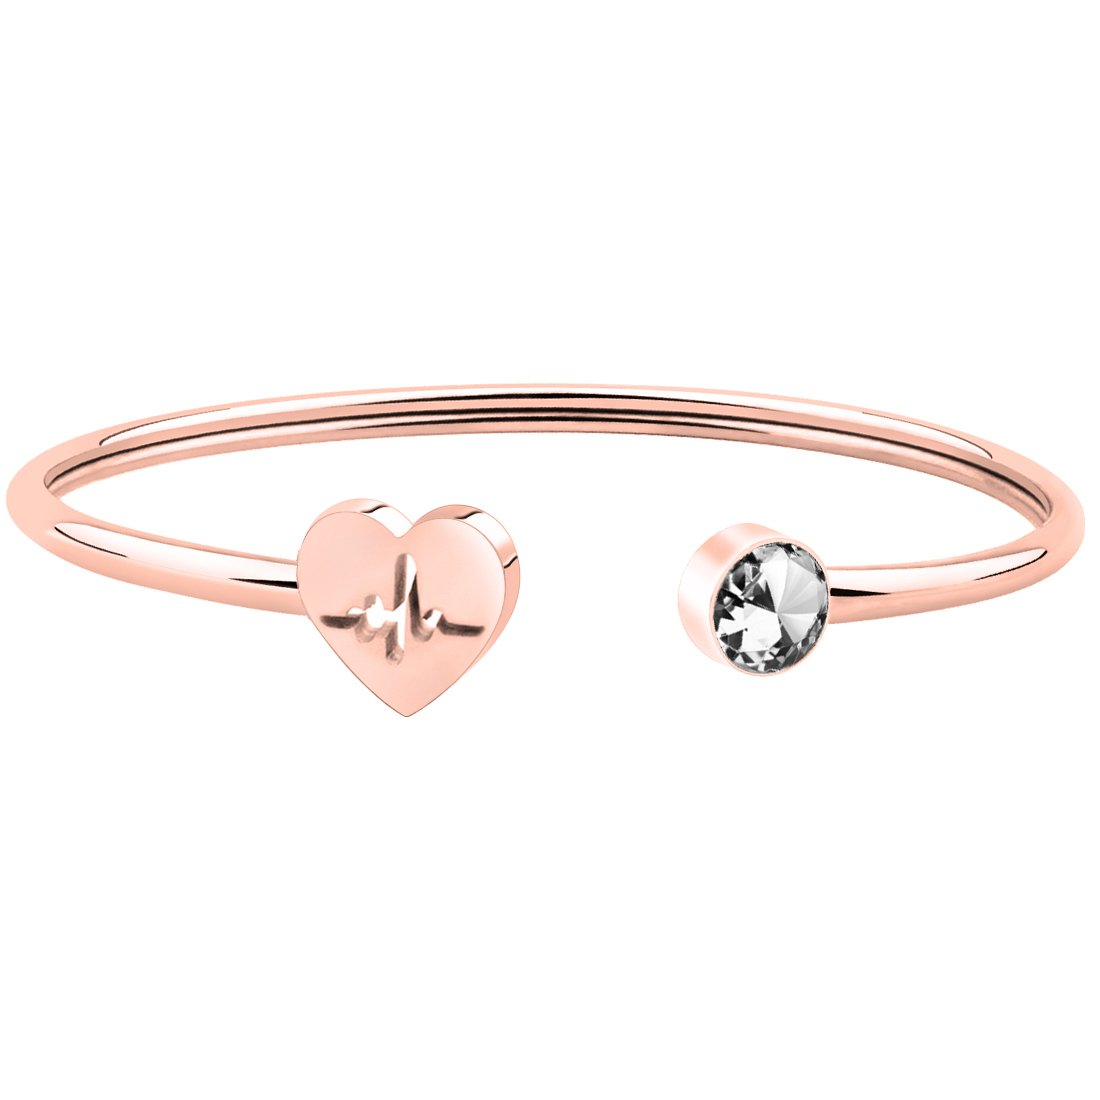 WUSUANED Dainty Rose Gold Heart Beat Cuff Bracelet Christmas Gift for Nurse Doctor (heartbeat bracelet)